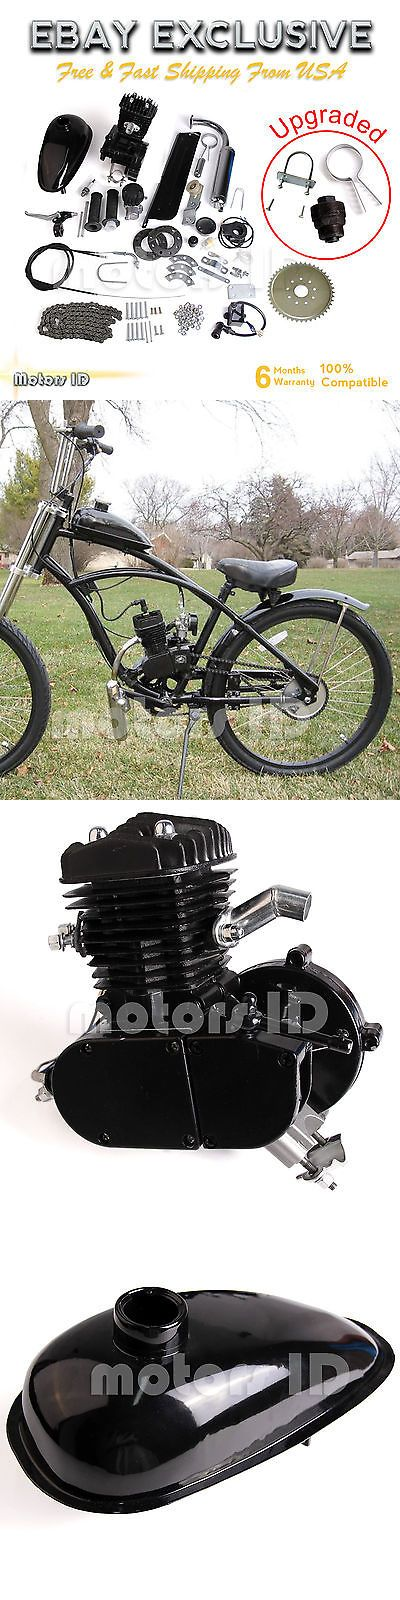 Gas Scooters 75211: Upgraded 80Cc 2-Stroke Motor Engine Kit Gas For Motorized Bicycle Bike Black -> BUY IT NOW ONLY: $112 on eBay!